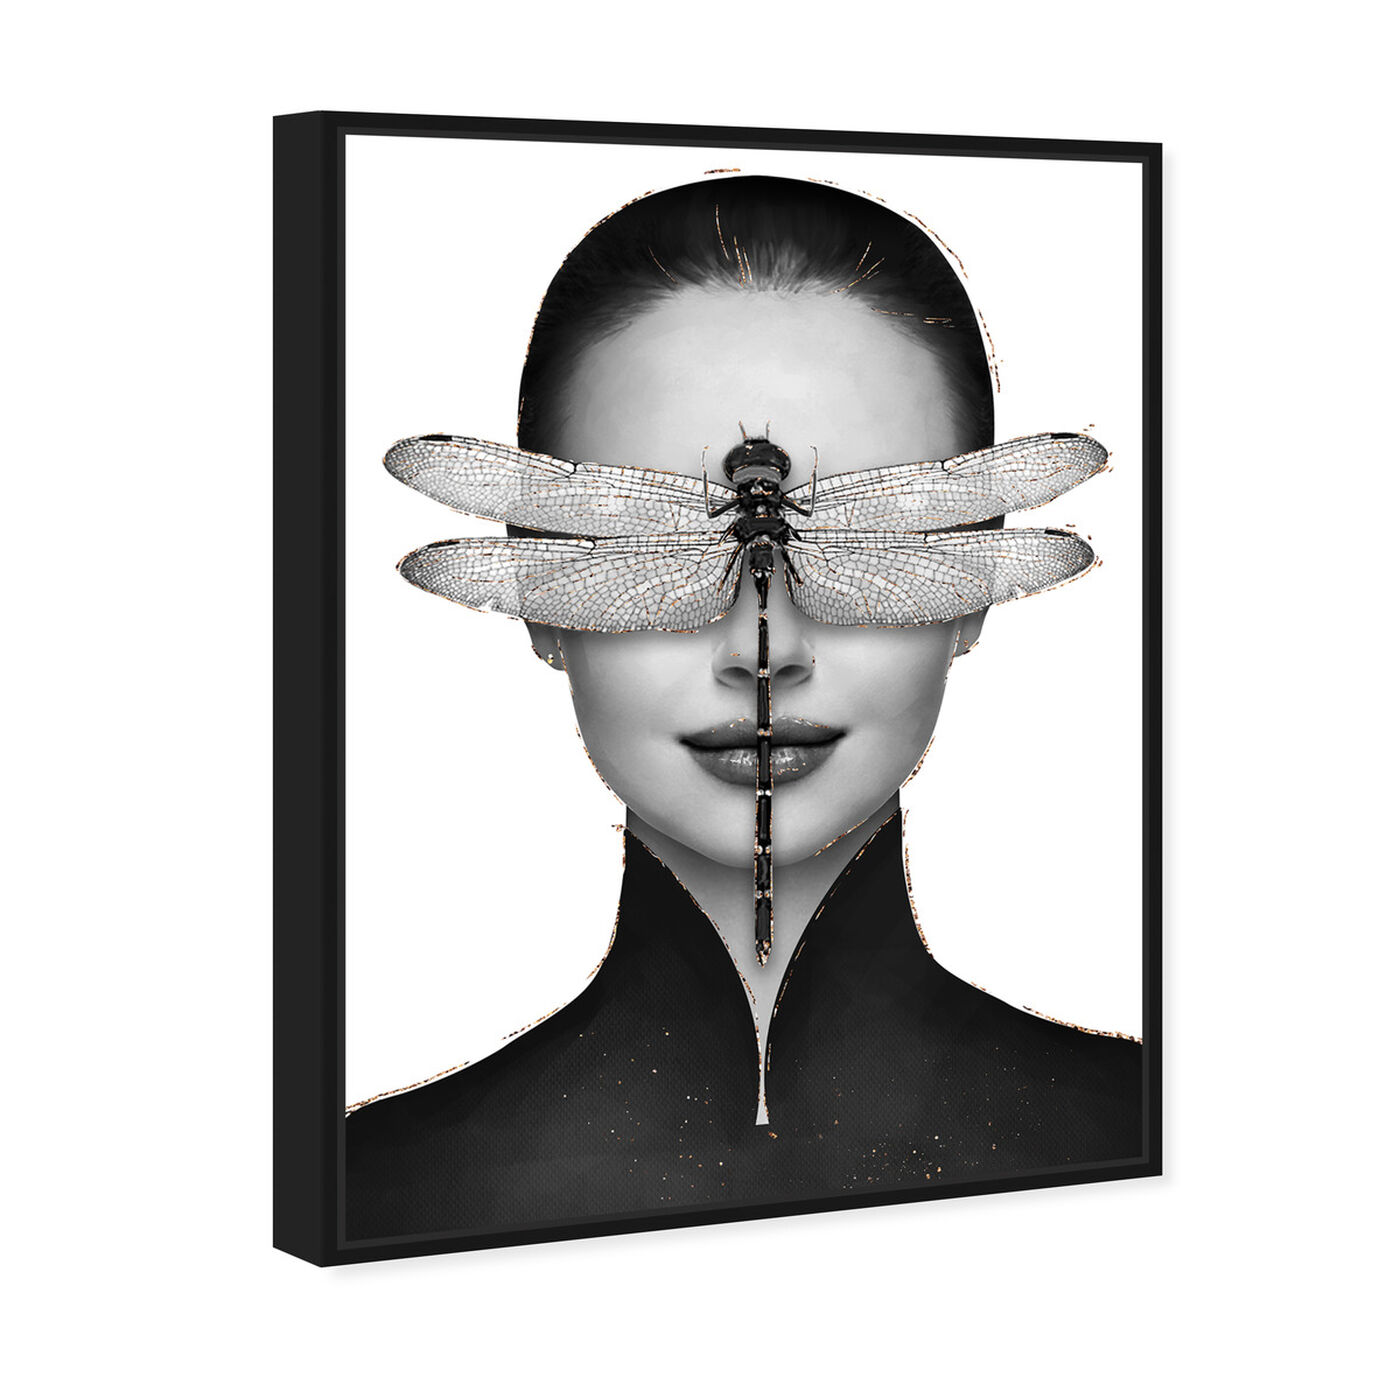 Angled view of Dragonfly Duchess featuring fashion and glam and portraits art.